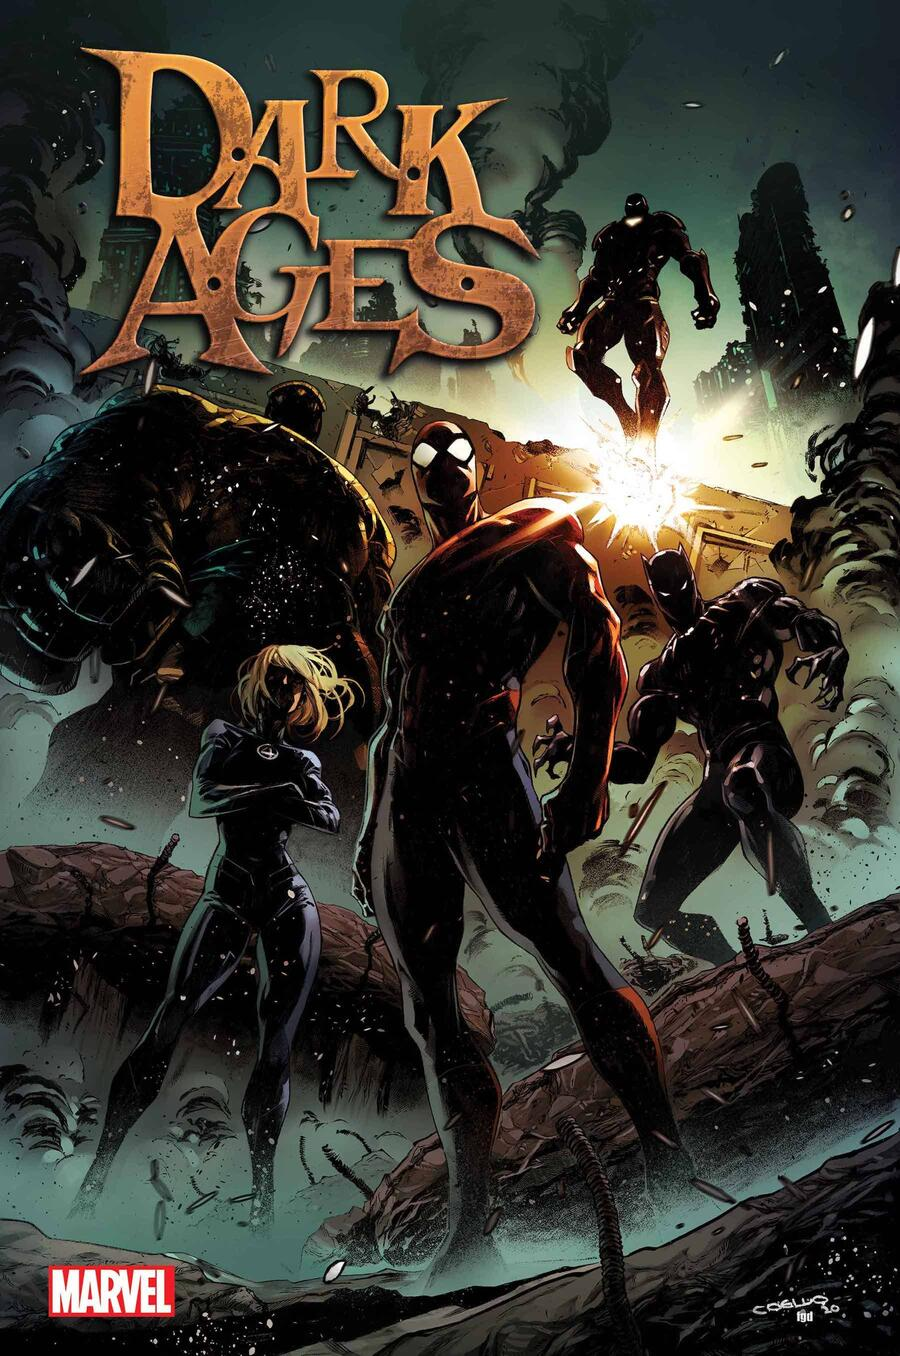 DARK AGES #1 cover by Iban Coello